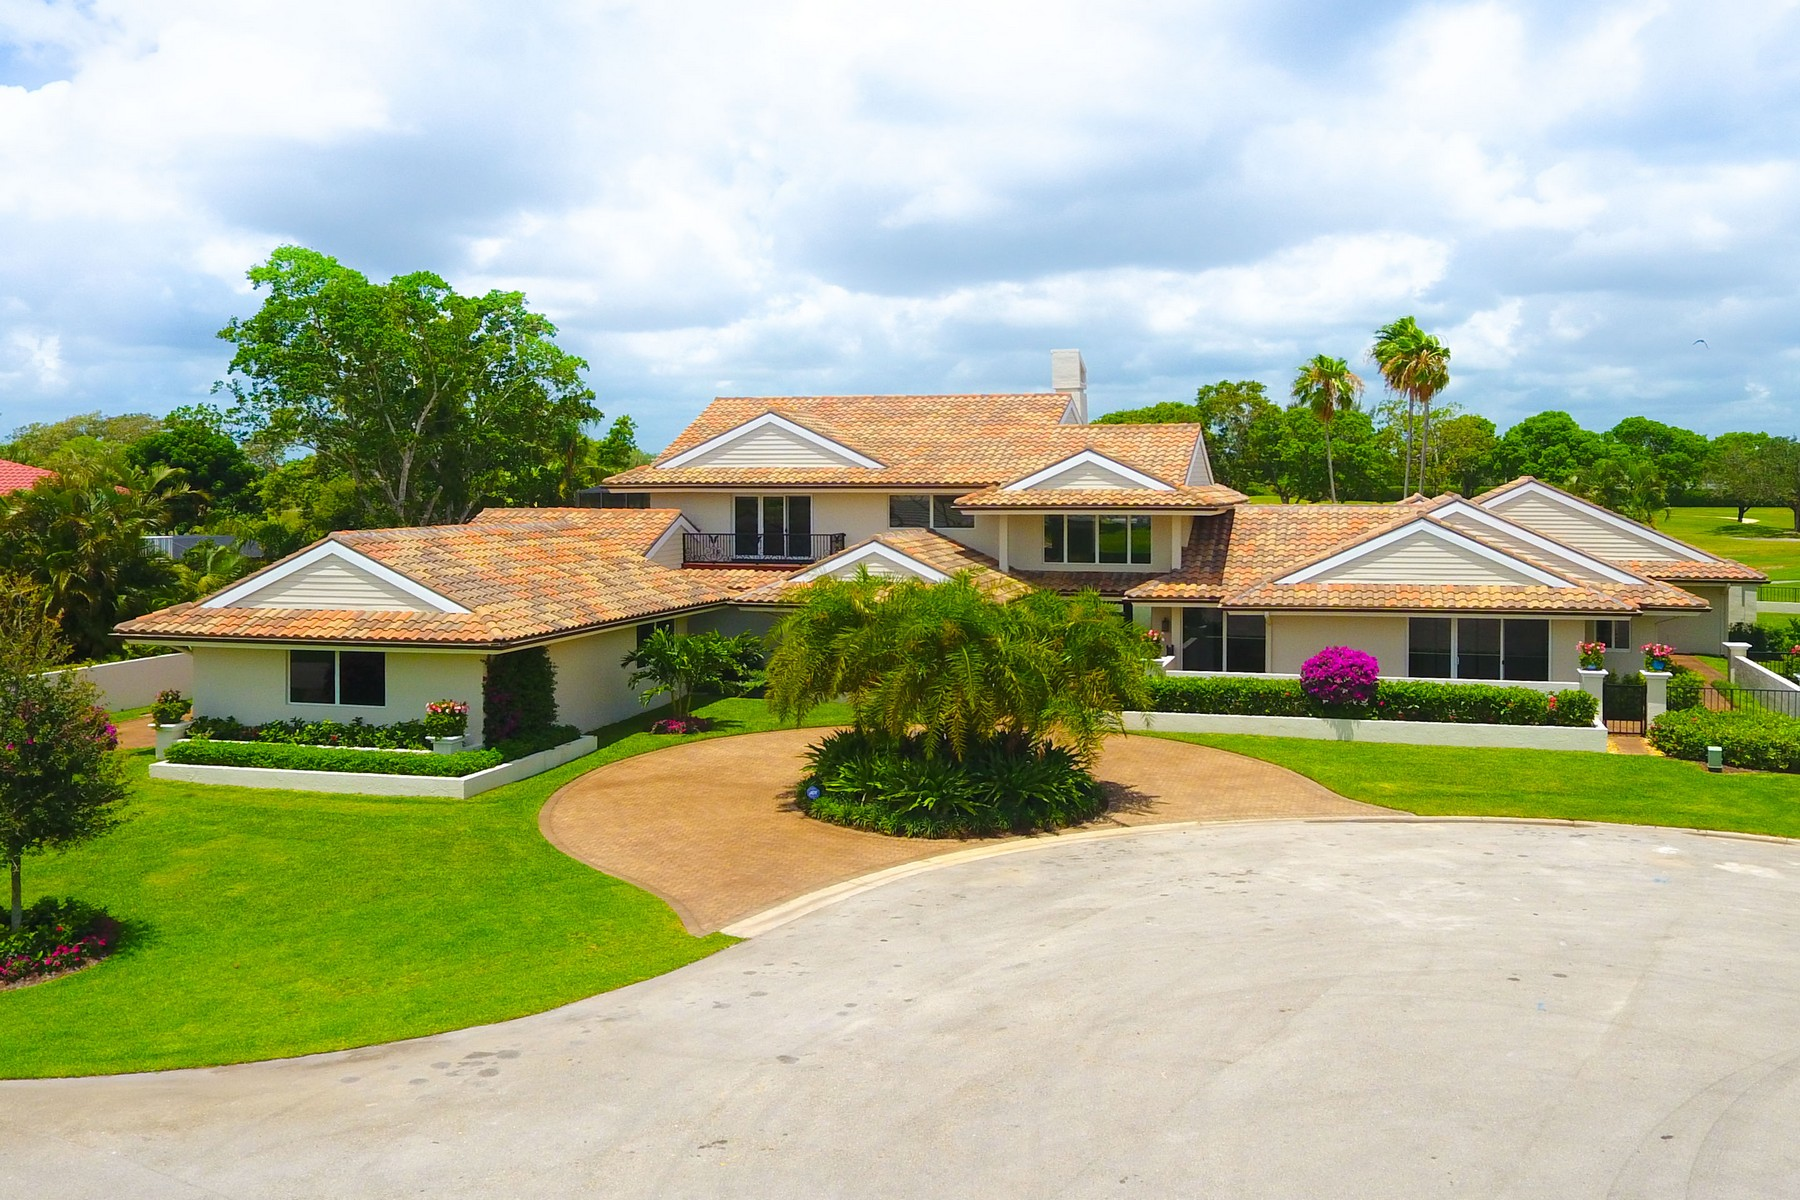 Single Family Home for Sale at 11795 Maidstone Drive Wellington, Florida, 33414 United States